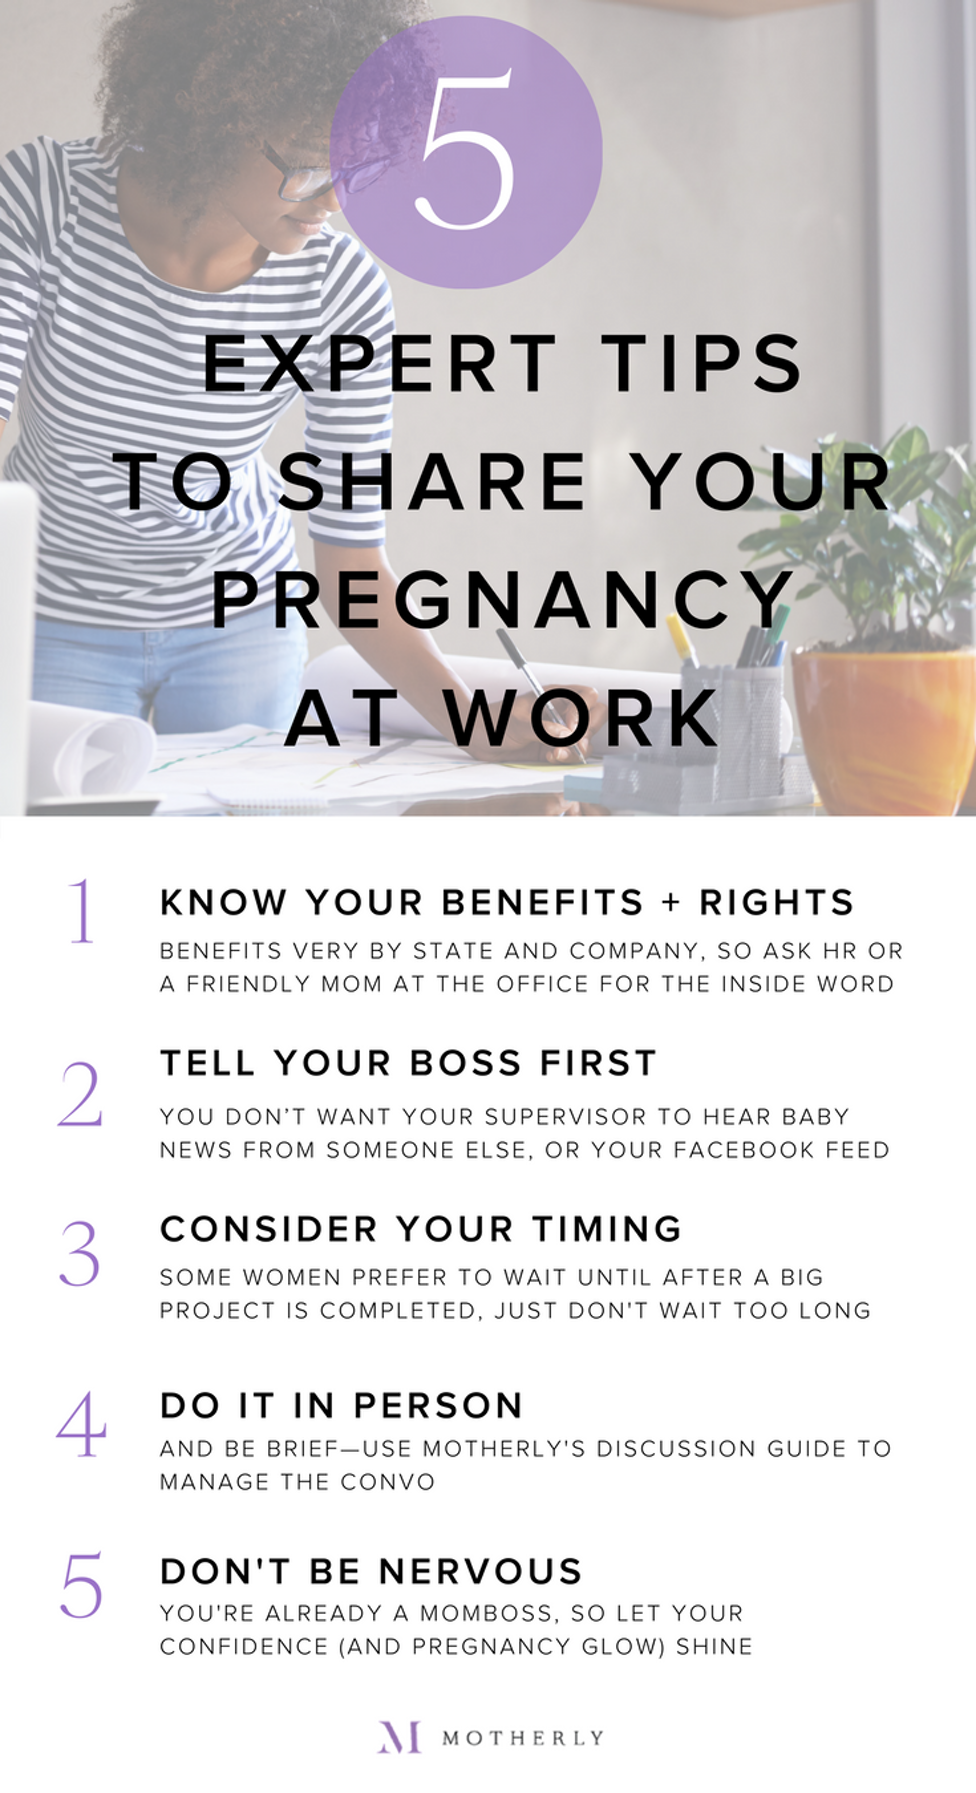 when should i tell my boss i am pregnant